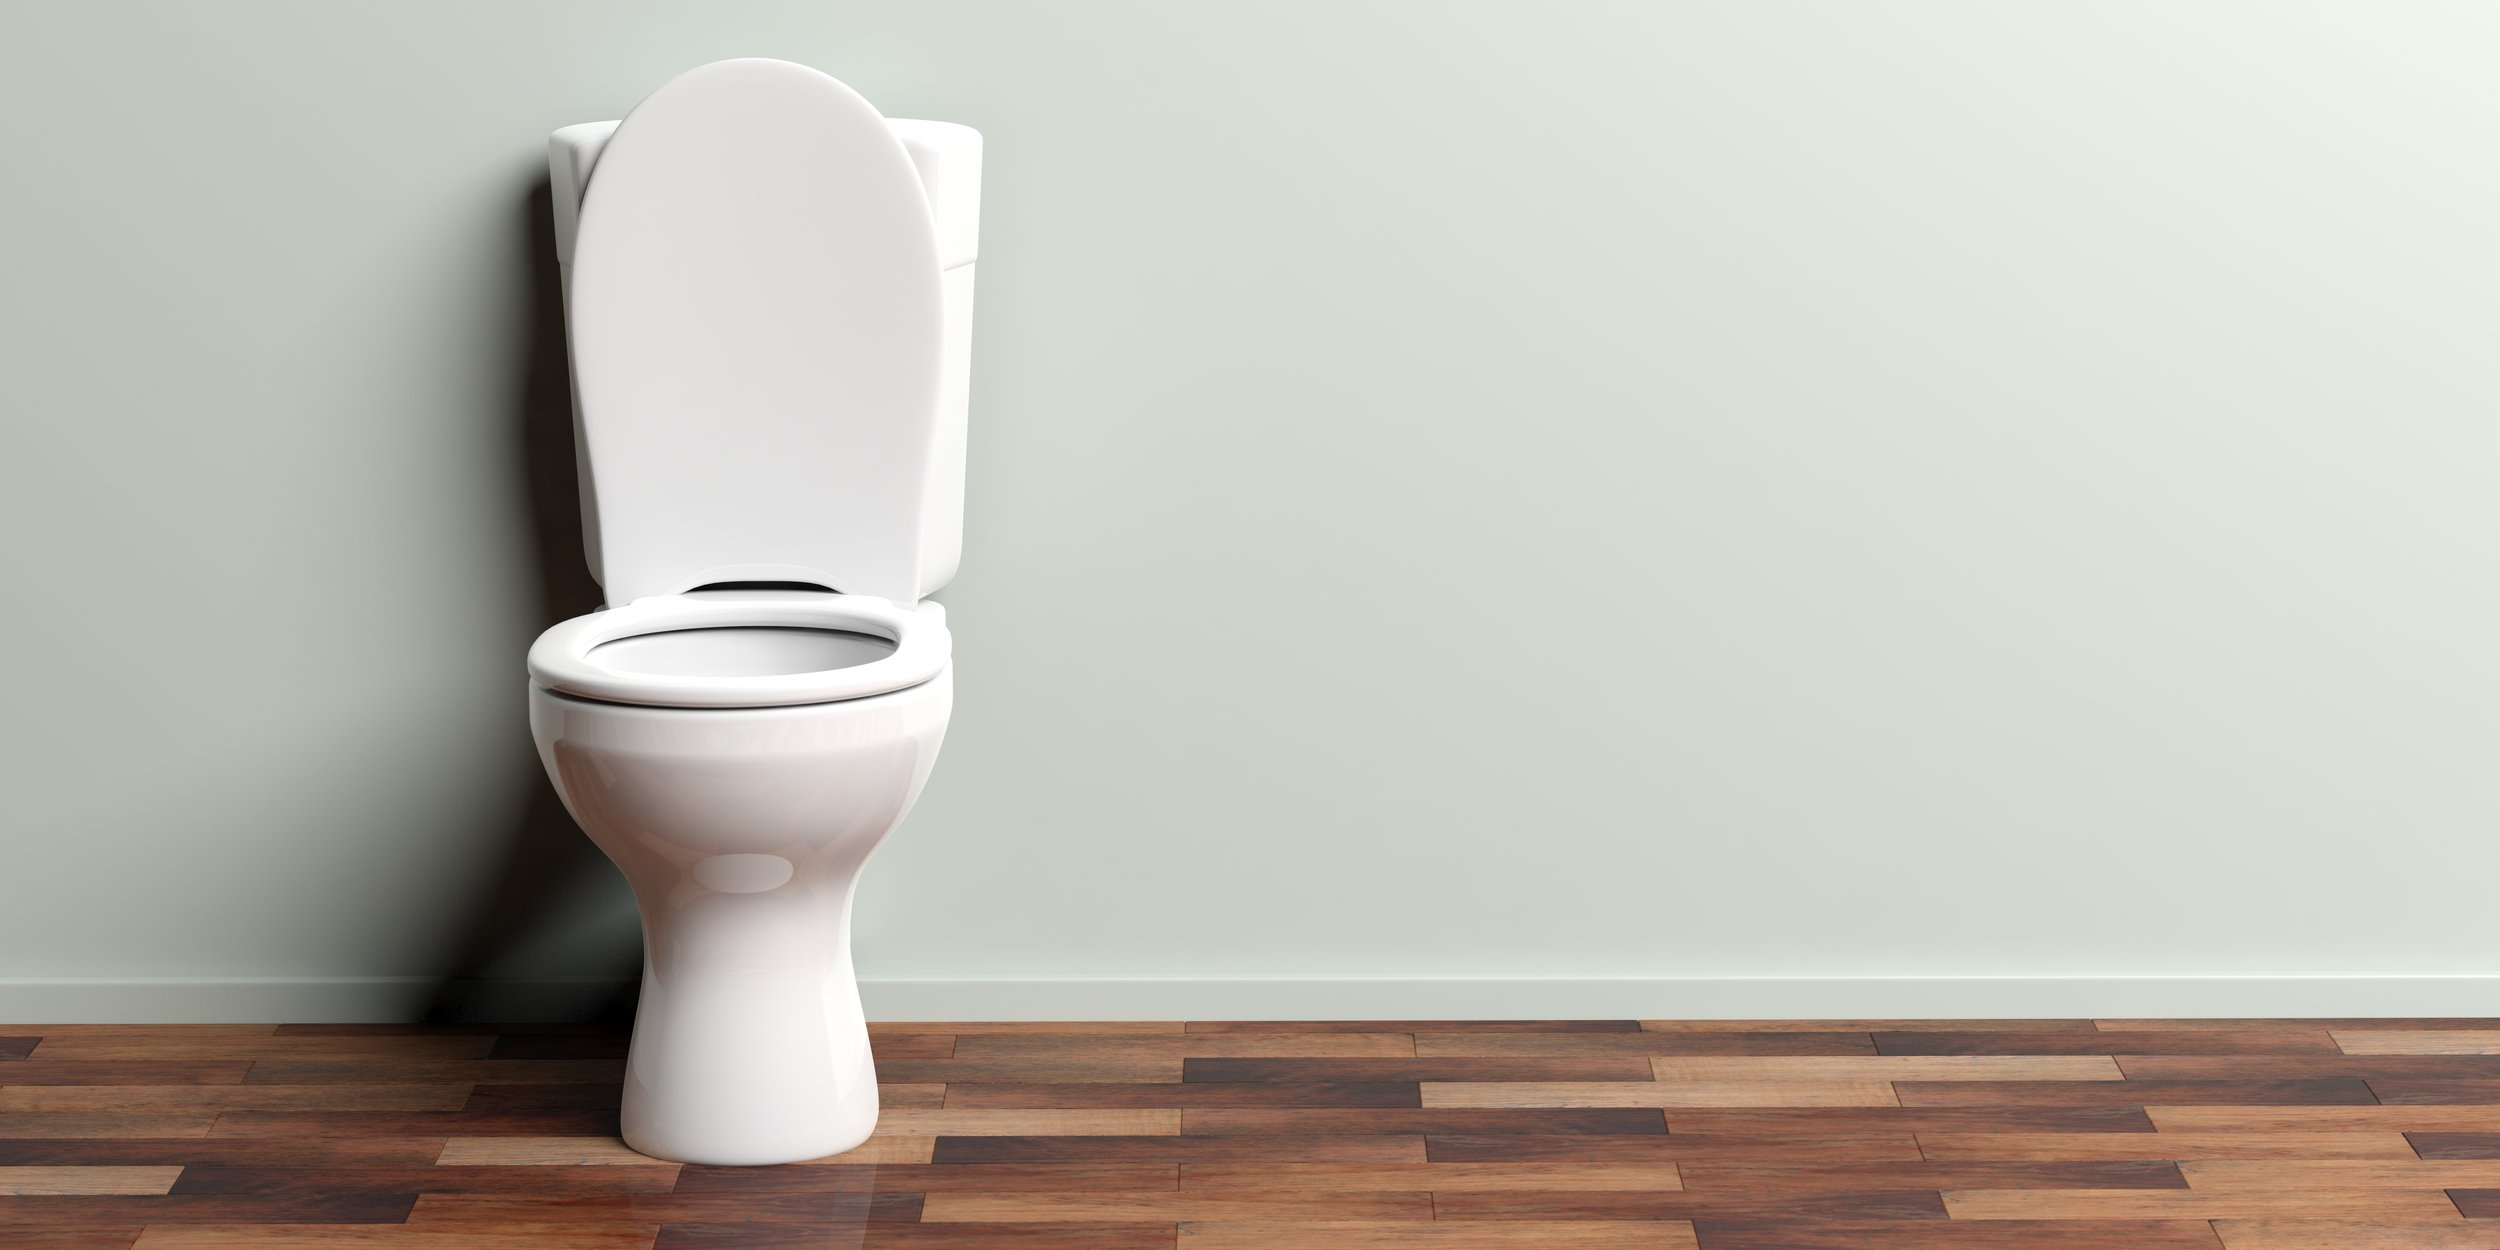 Toilet installation & Repairs -